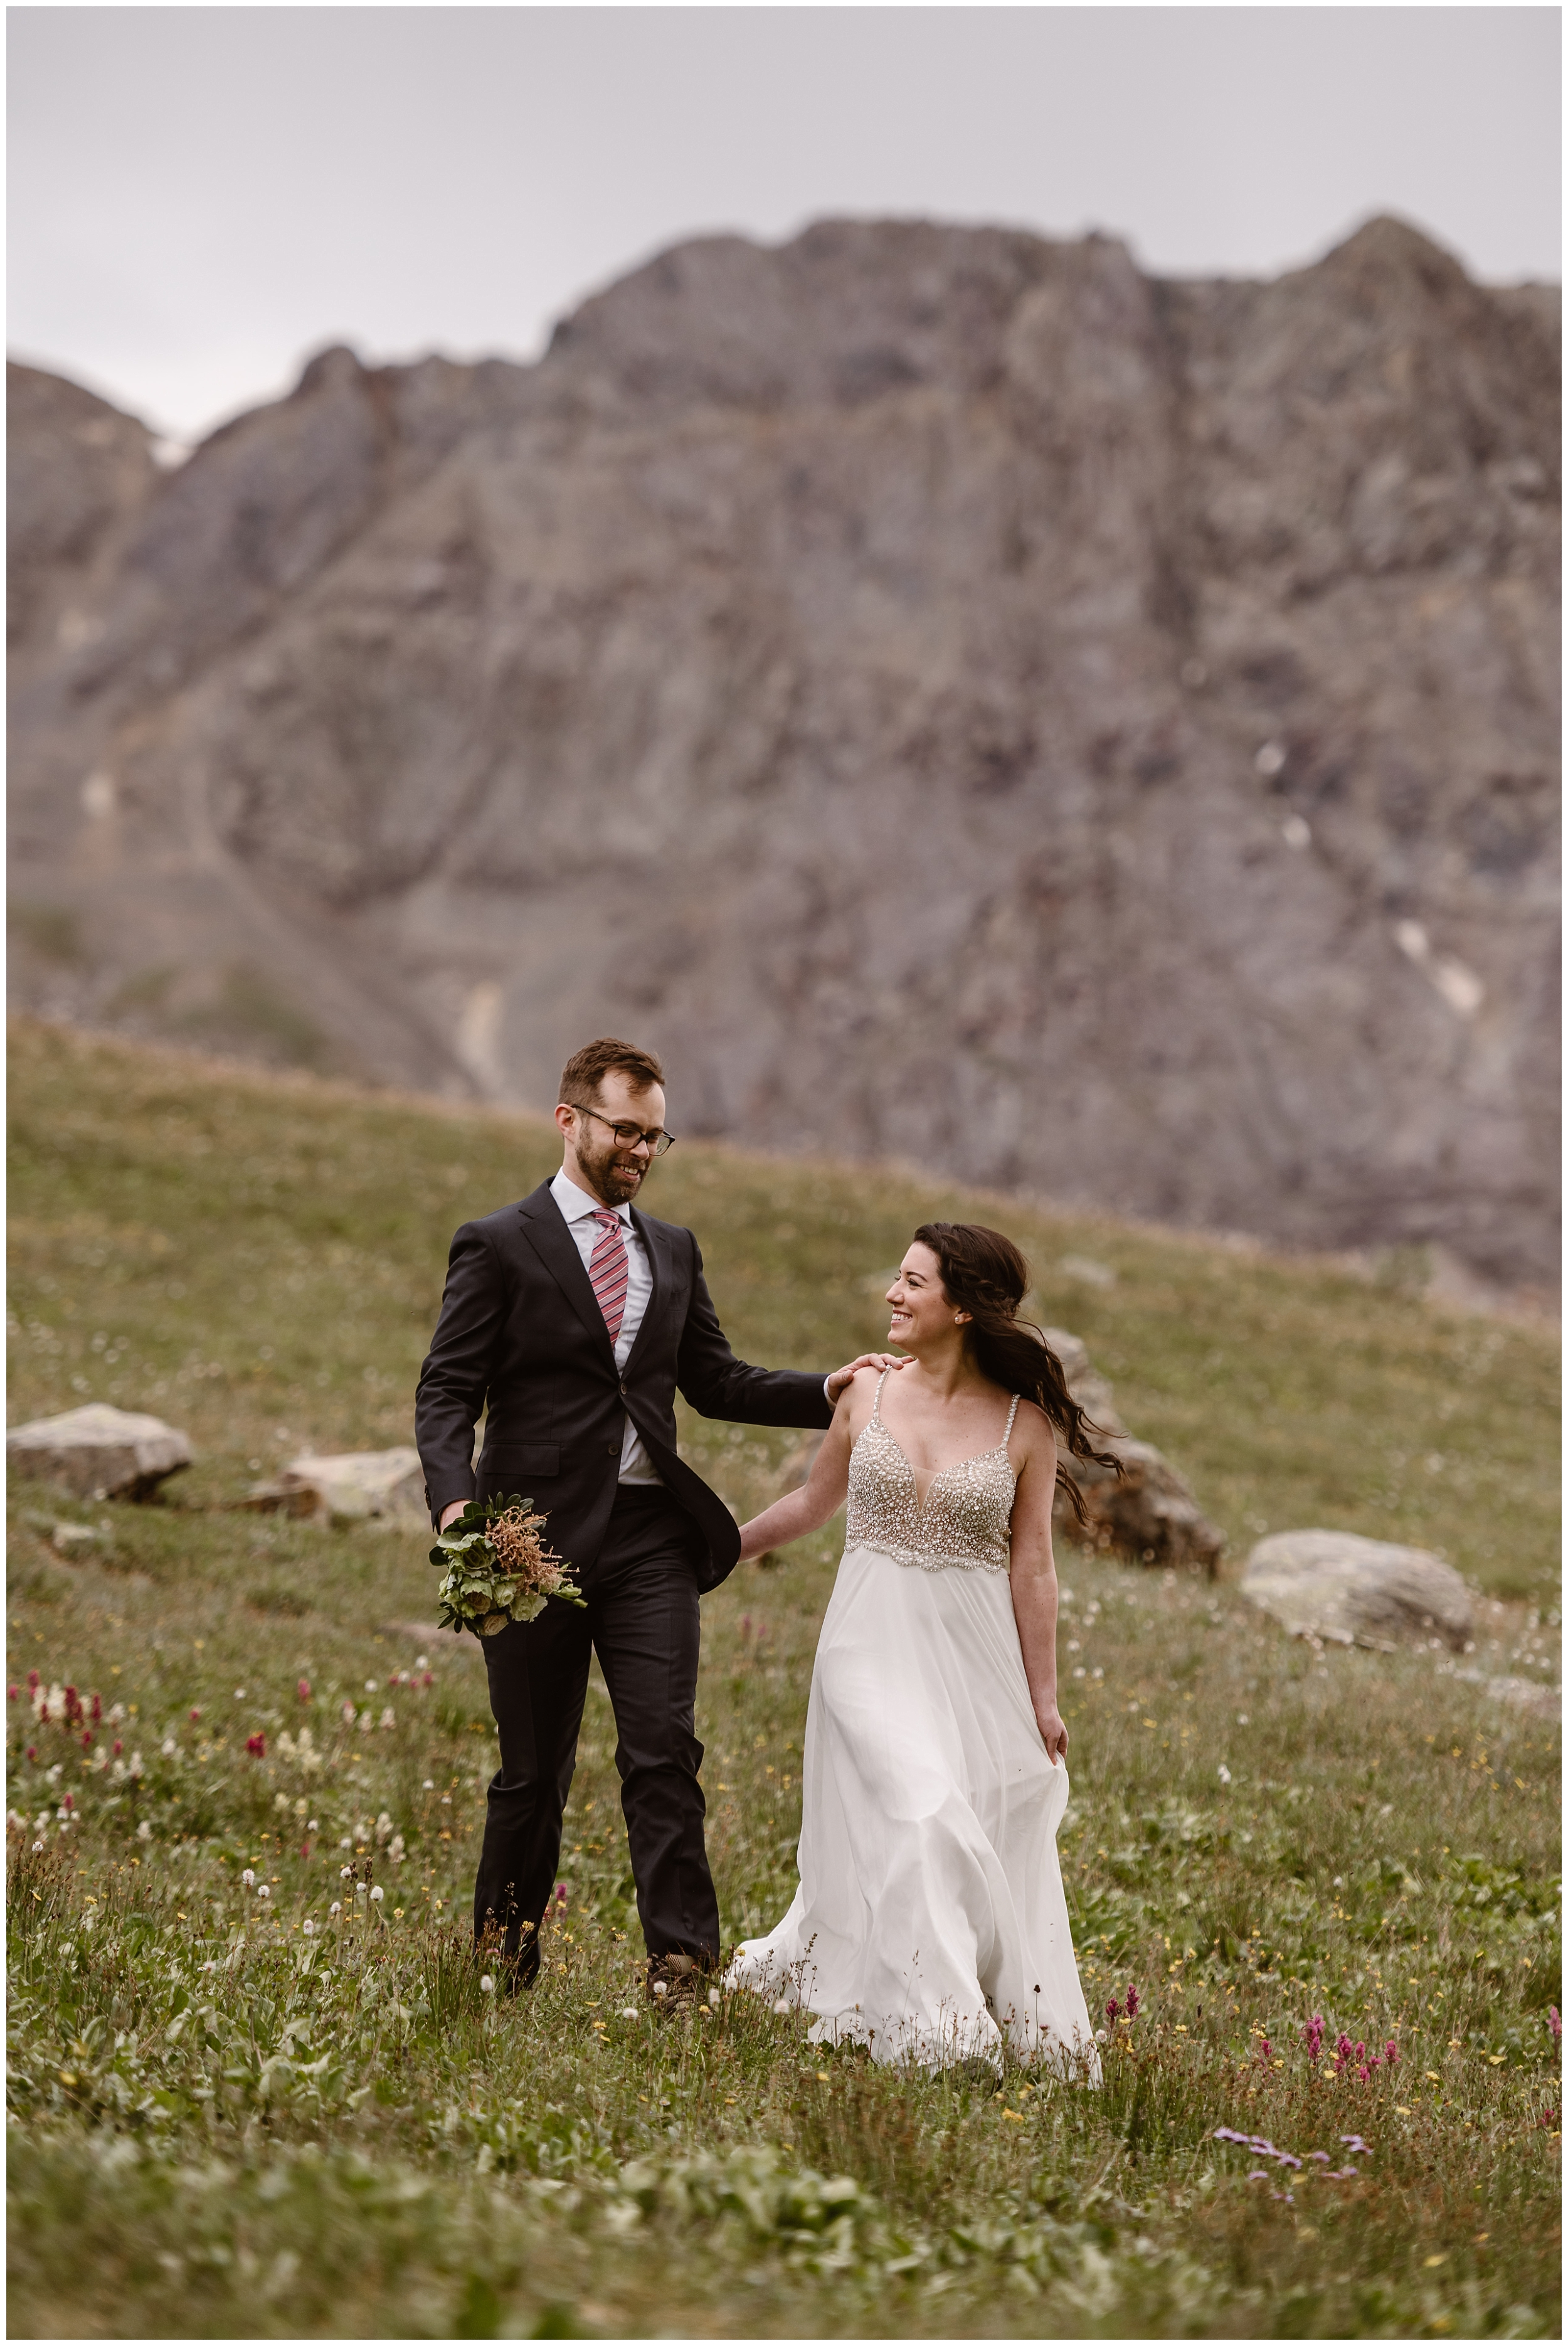 Logan, the groom, puts his arm on Katie's shoulder as he follows close behind her in a green, mountainside meadow. In his other hand, he holds Katie's bouquet of flowers. In these adventure elopement pictures, Katie looks back at Logan with a giant smile on her face as they head to their destinatino for their adventure elopement.